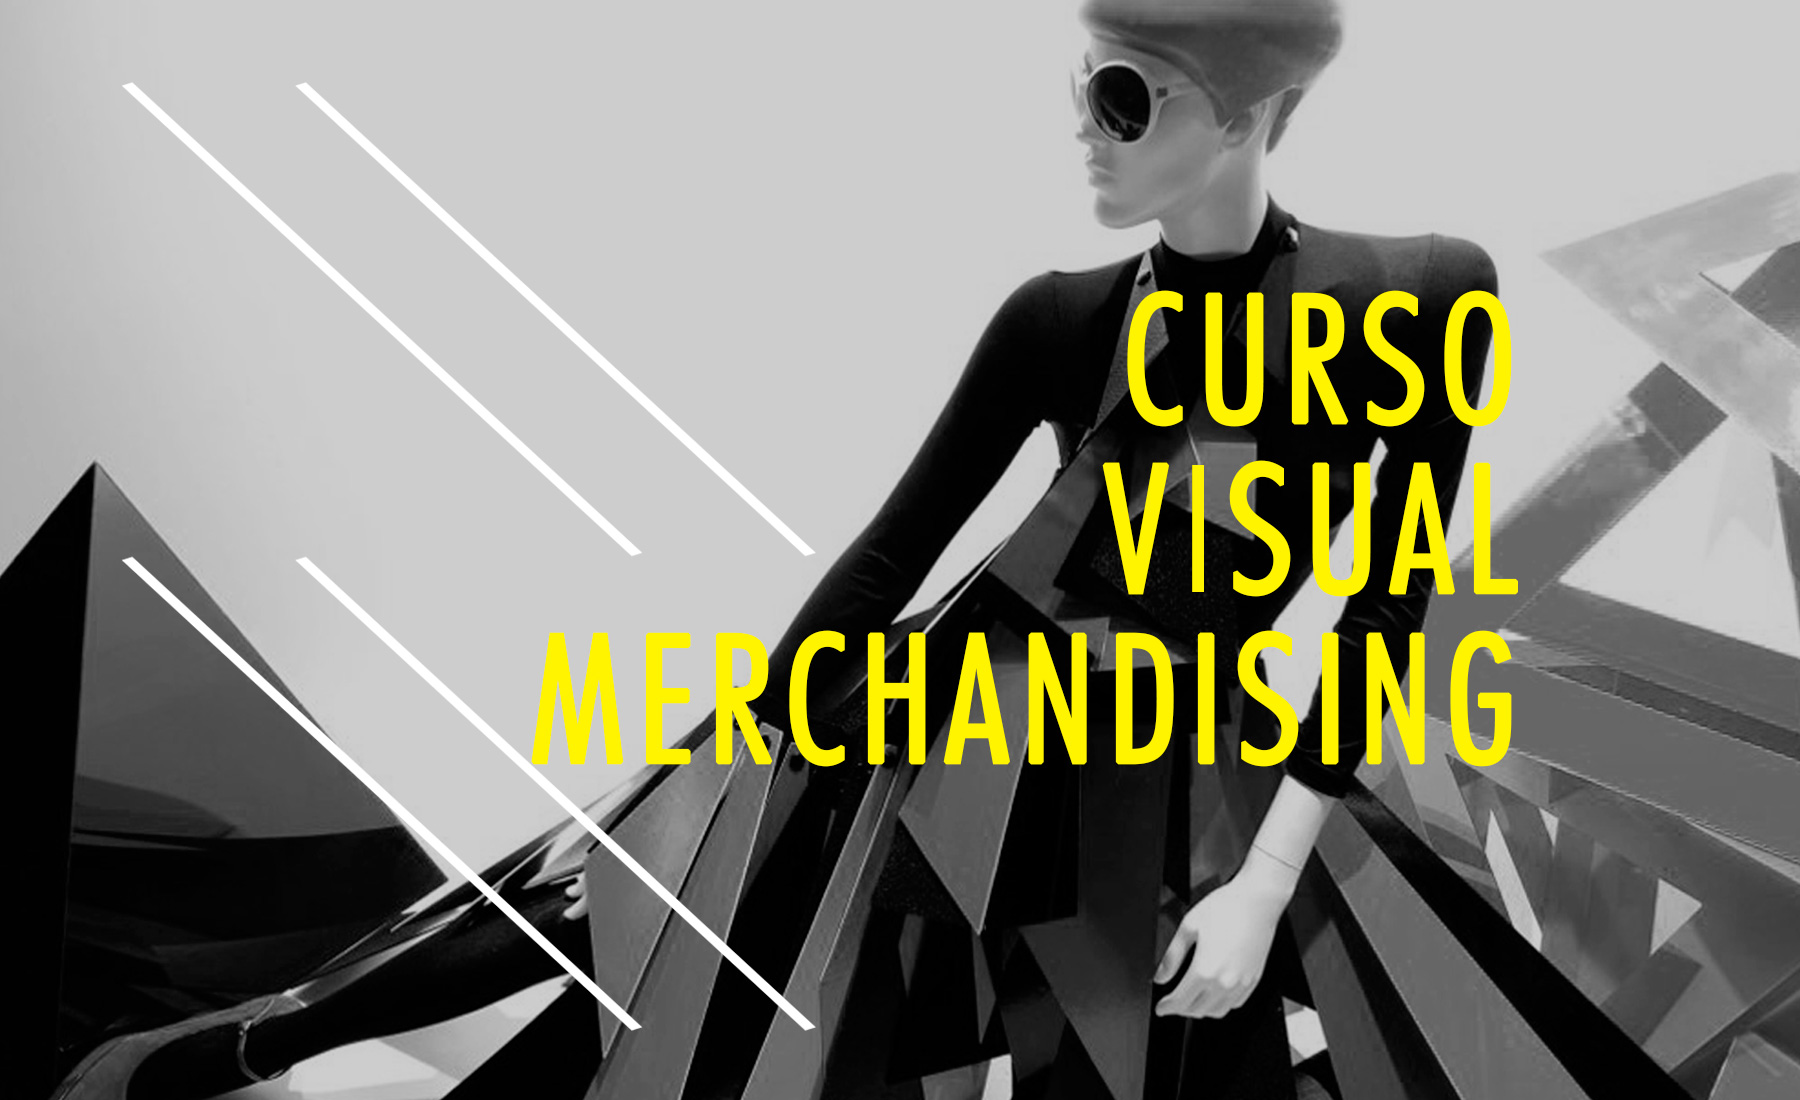 Curso de Visual Merchandising, clases virtuales en vivo distancia